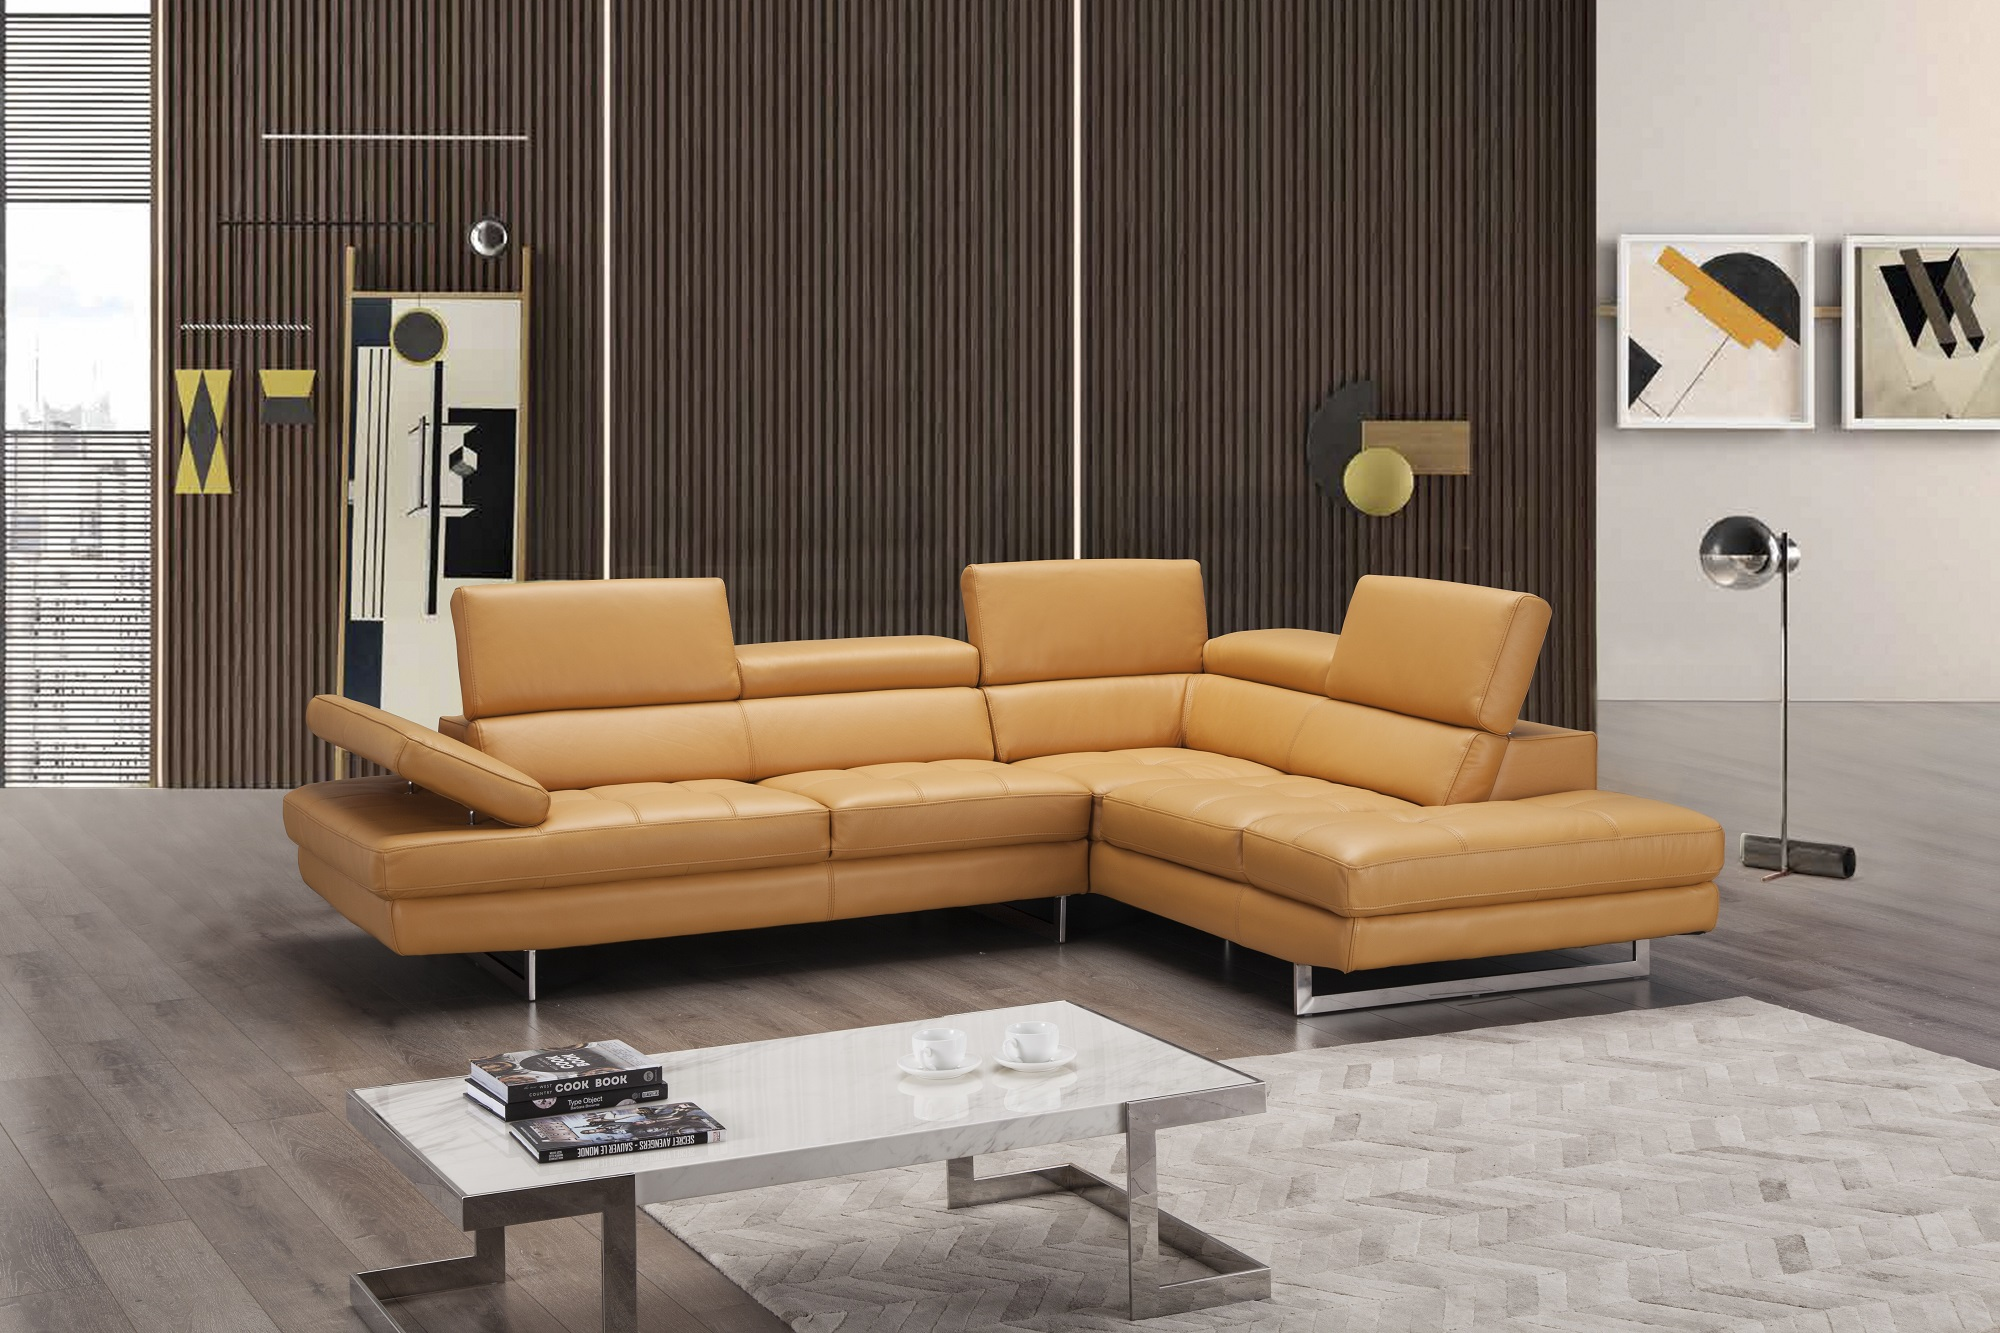 Elegant Modern Leather L-shape Sectional